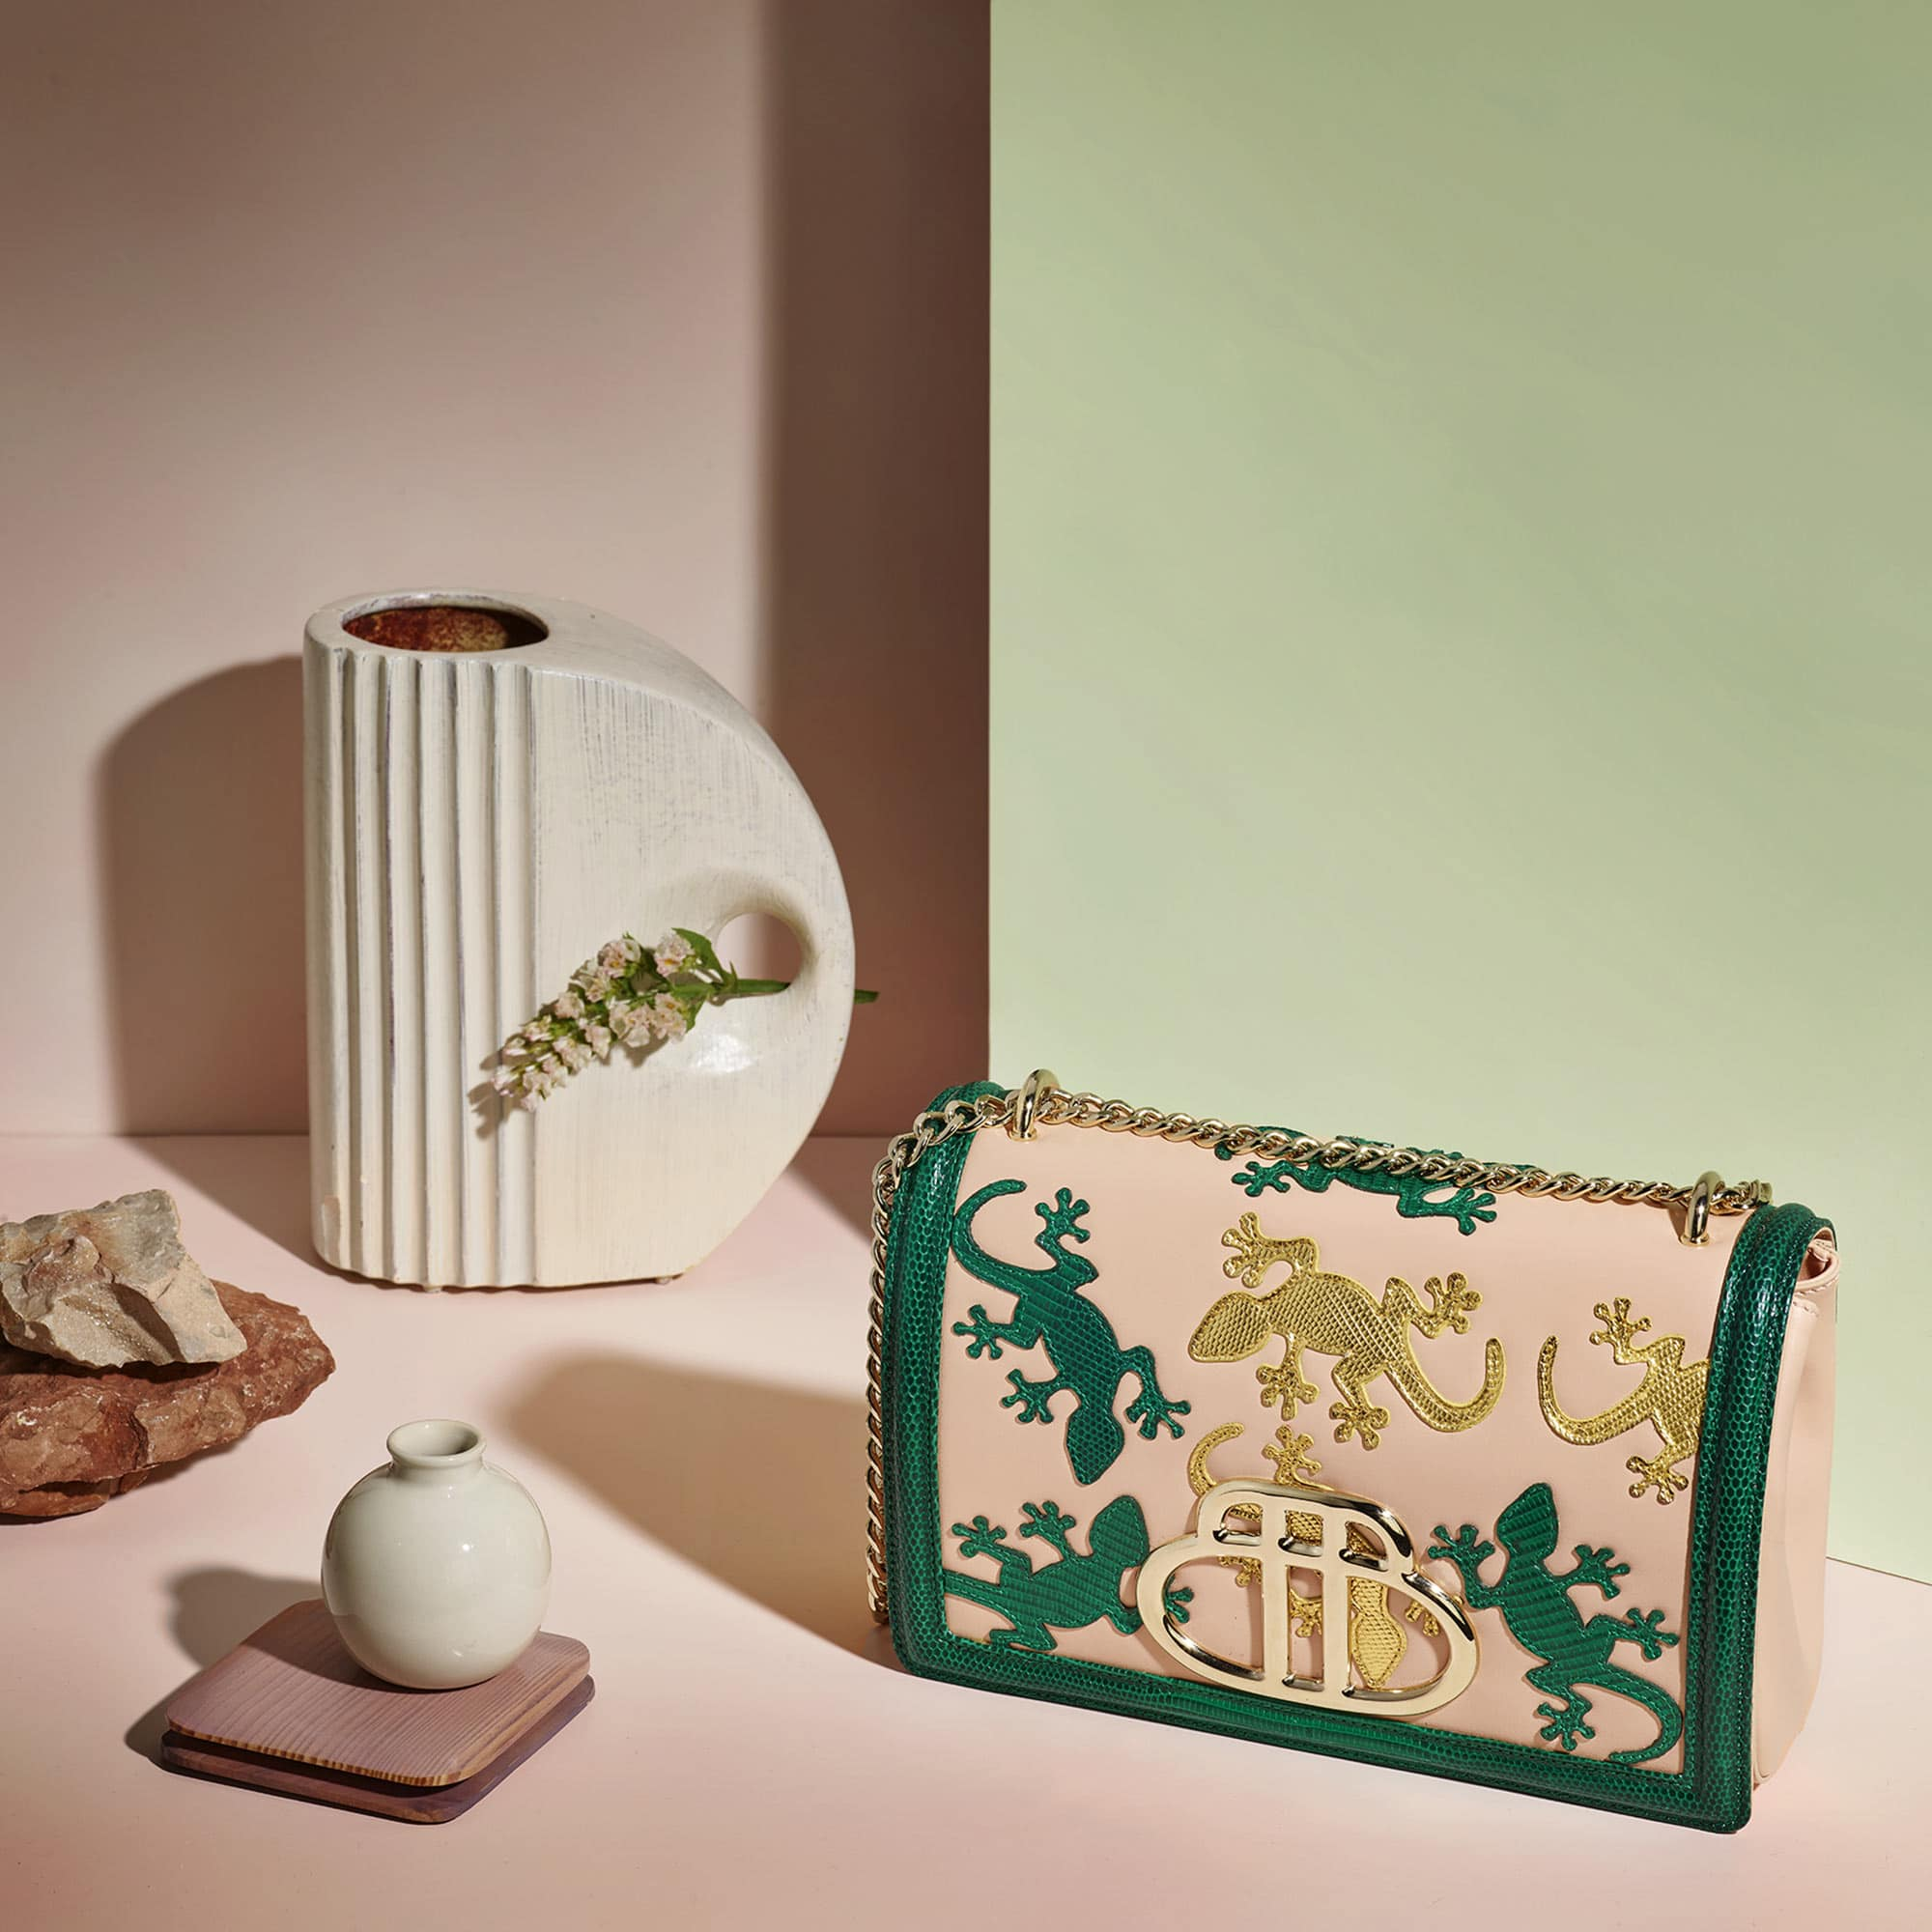 Geko Bag Pink Green Still Life Shot for Barchi by Fotografando